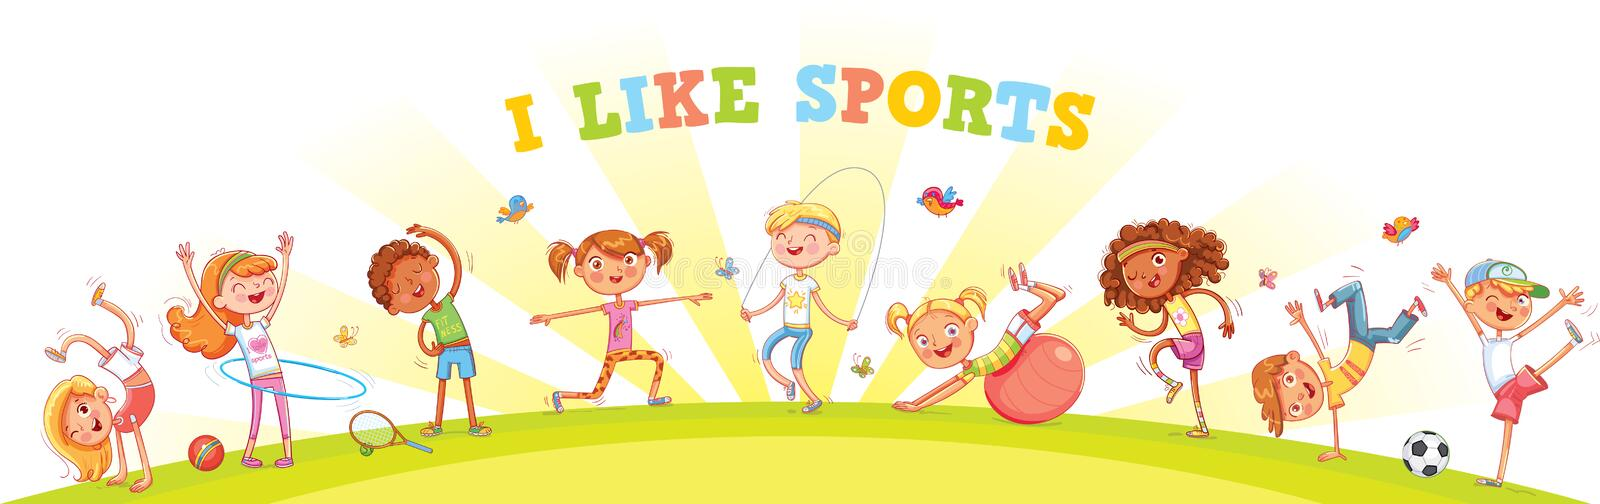 Children are engaged in different kinds of sports on nature background royalty free illustration